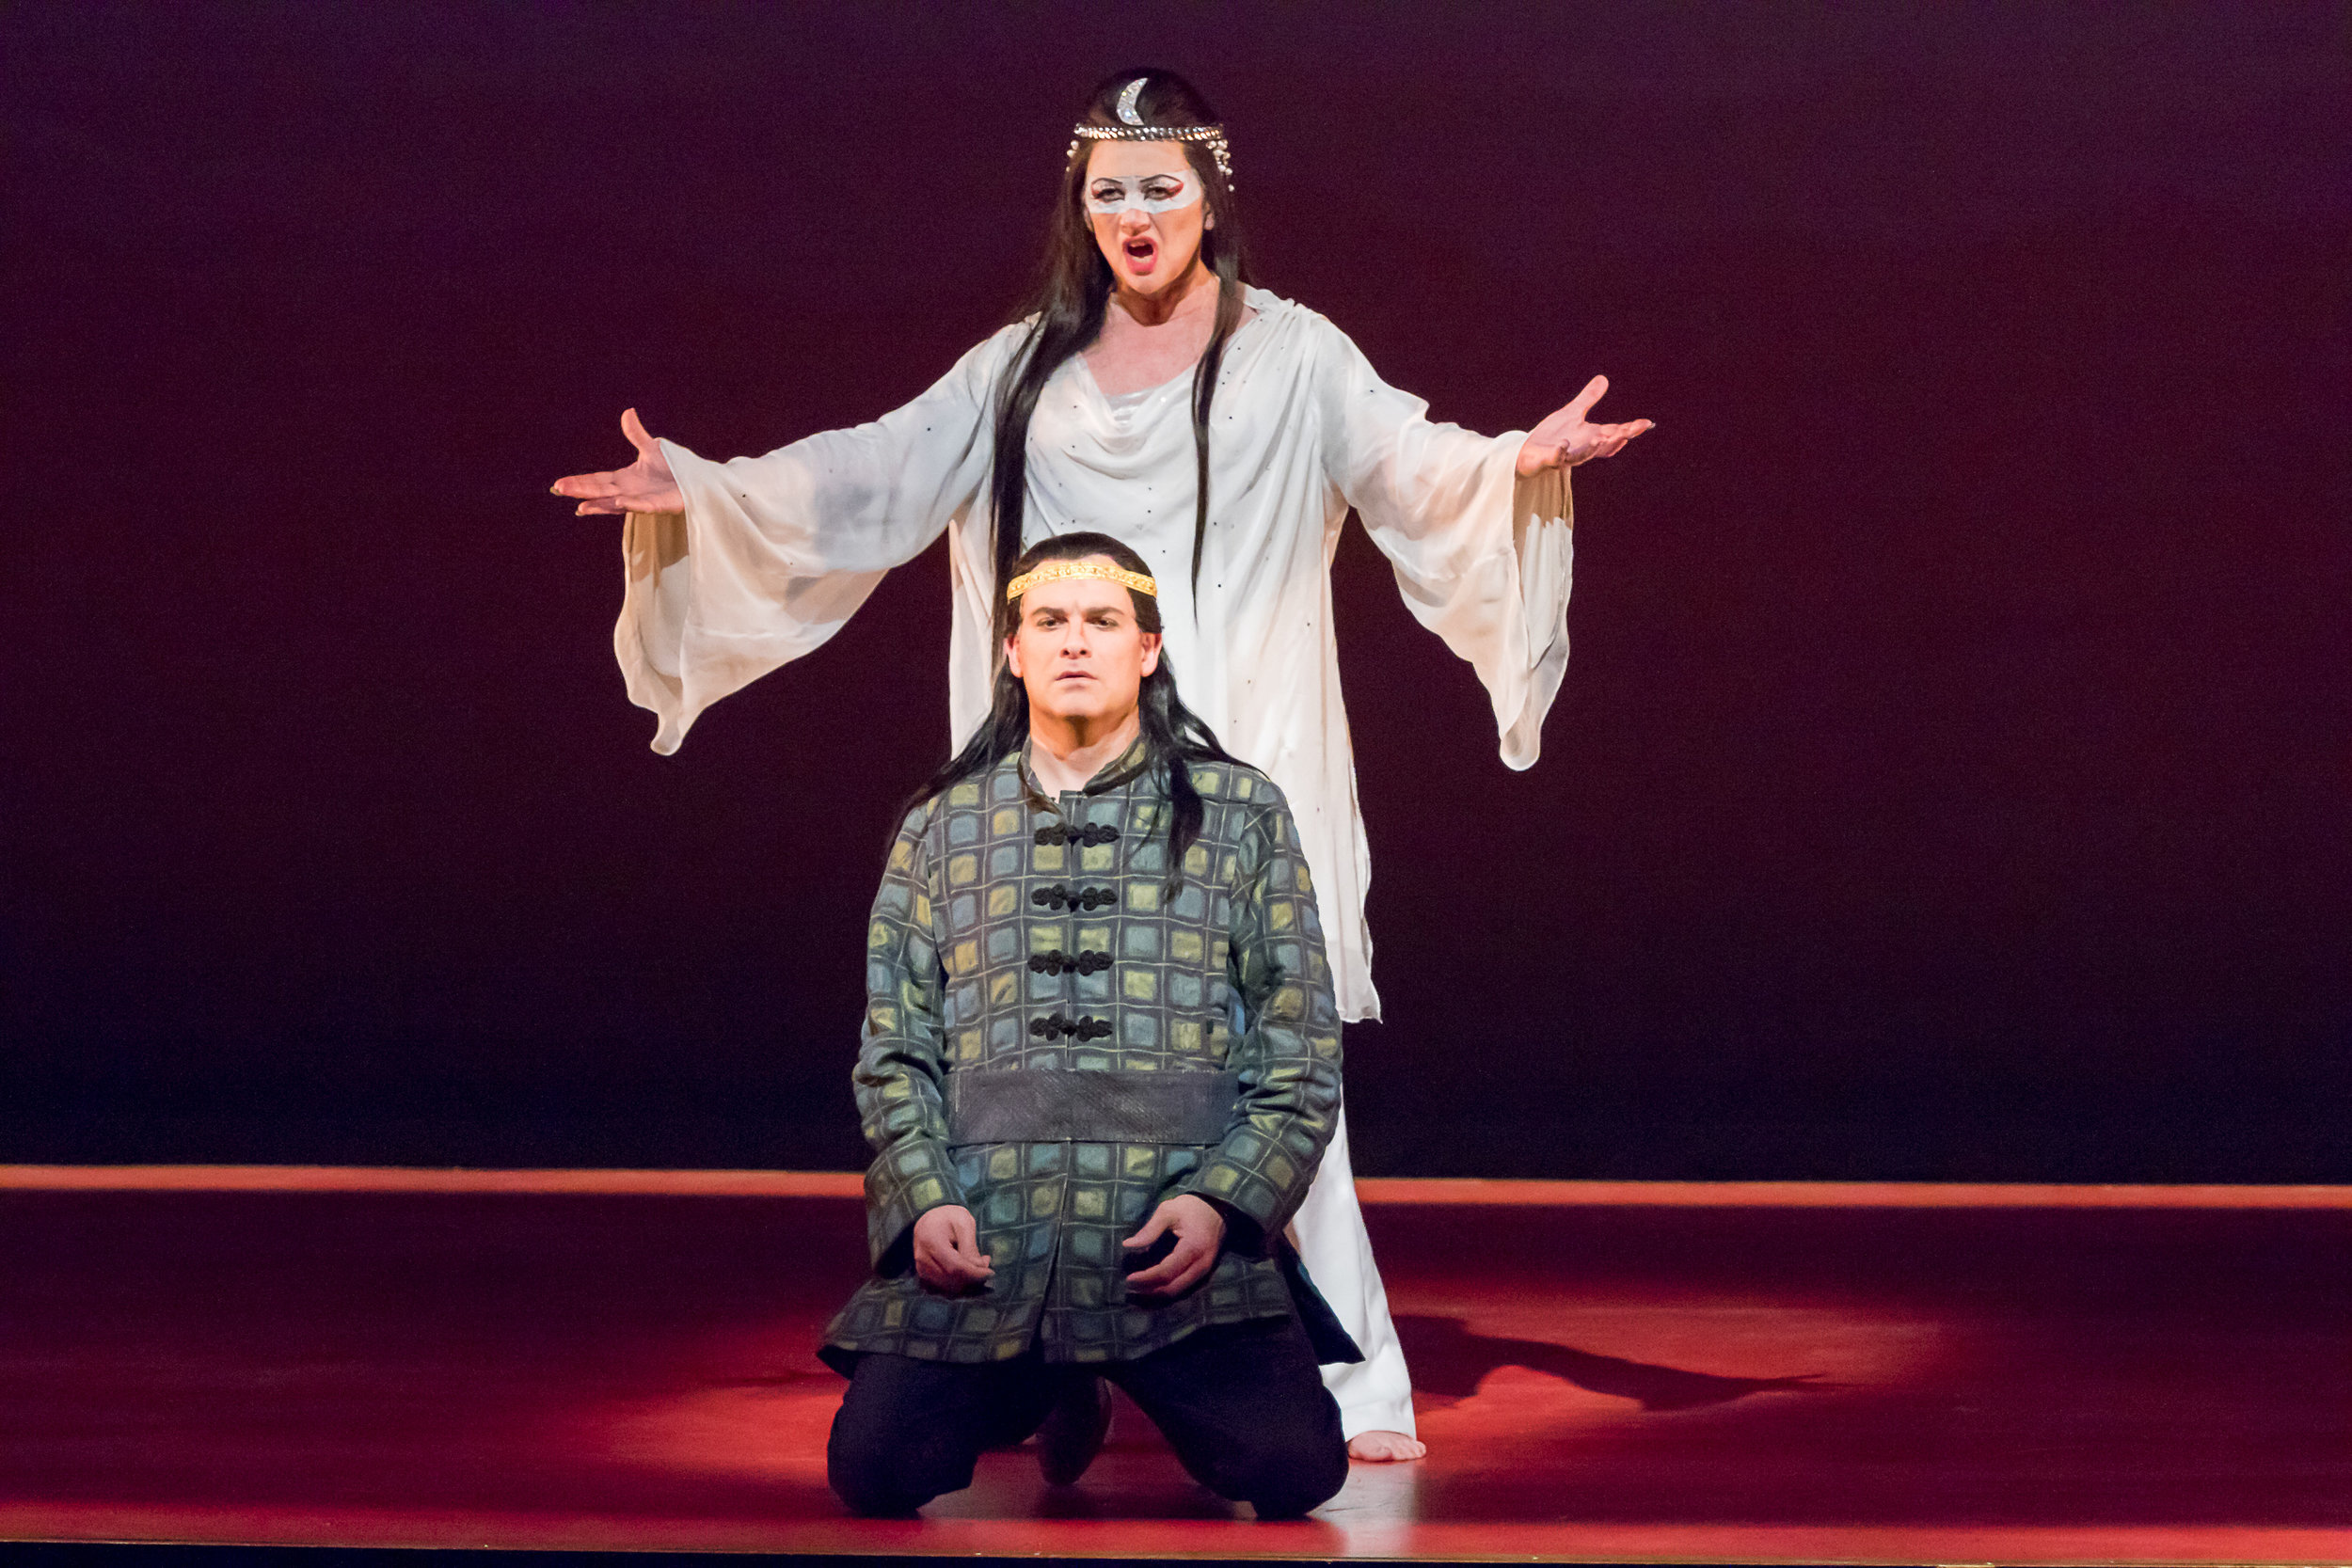 Turandot, Kelly Cae Hogan, stands above Prince Calaf, Derek Taylor. Photo by Ben Schill Photography; courtesy of Virginia Opera.